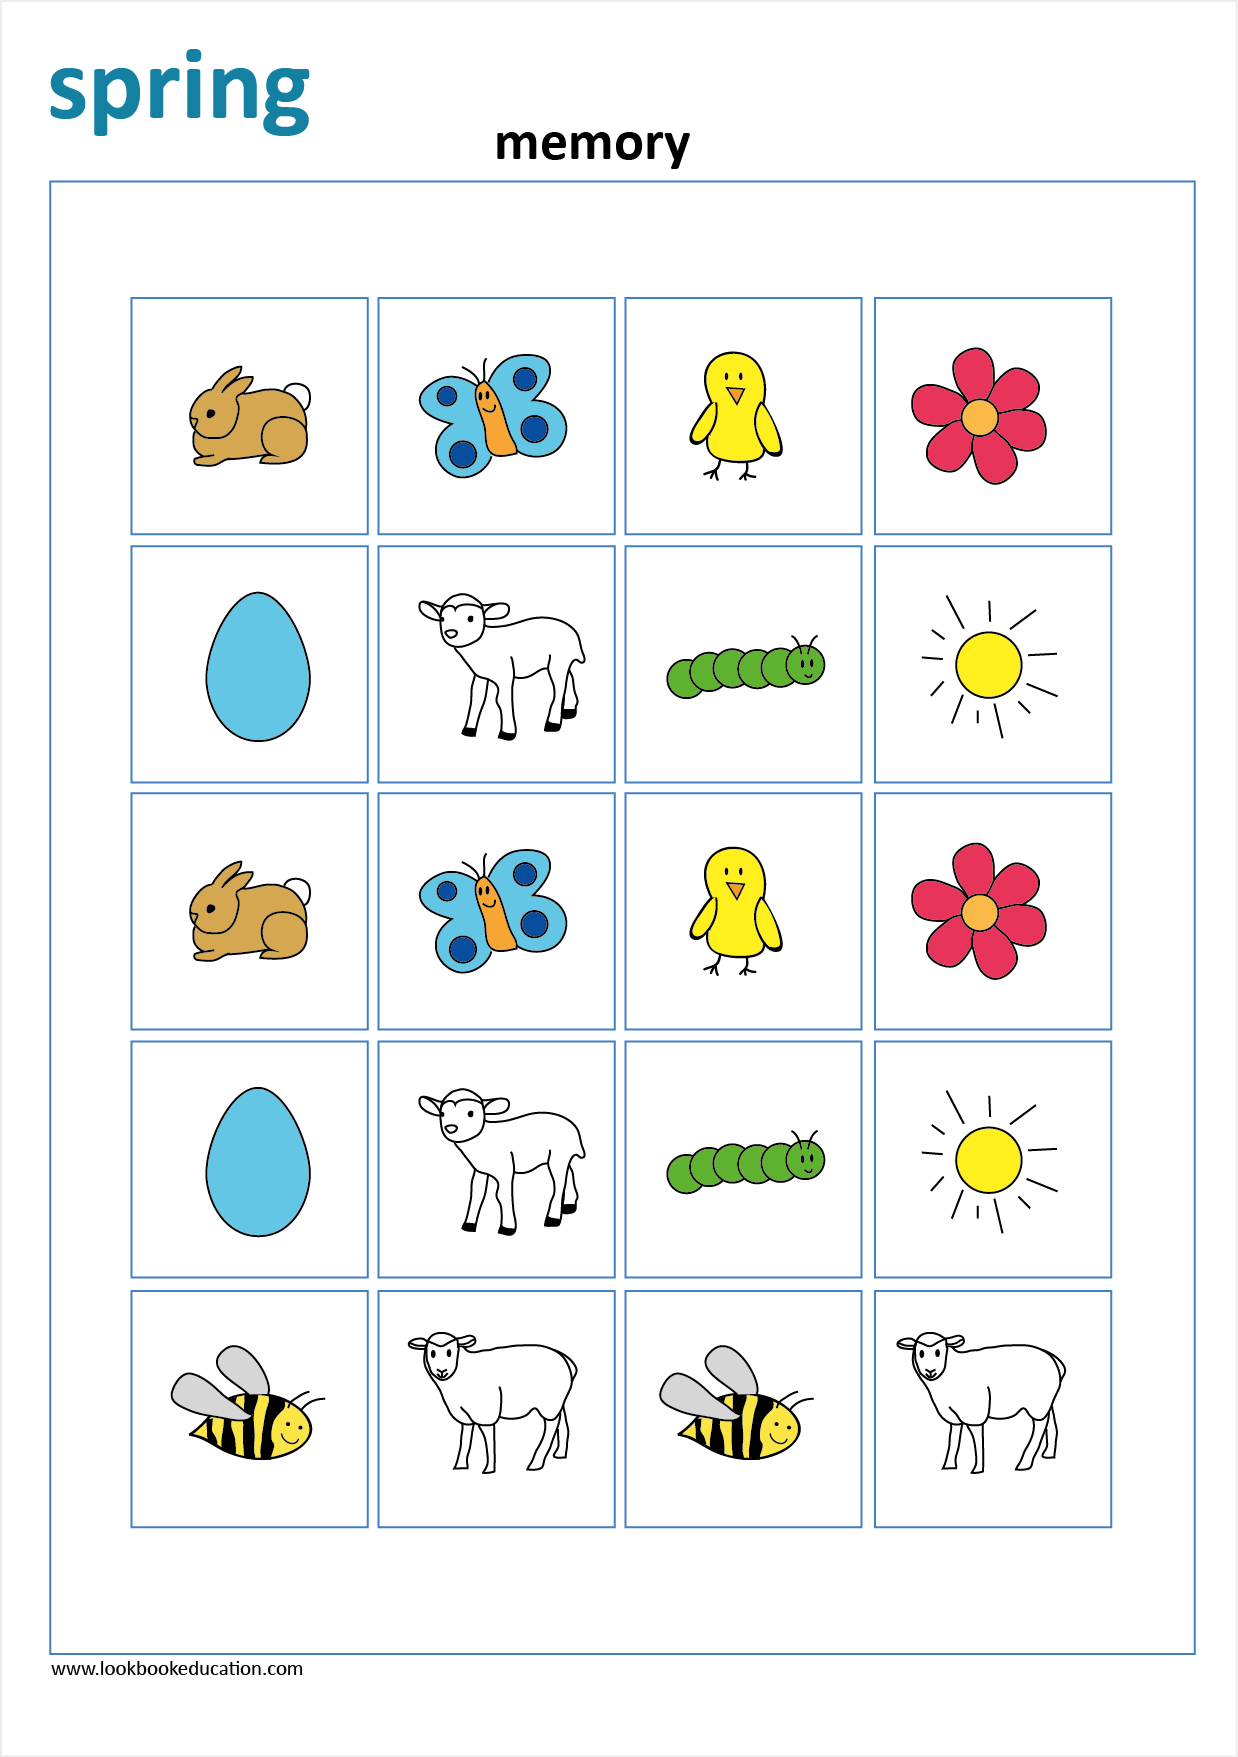 Worksheet Spring Memory